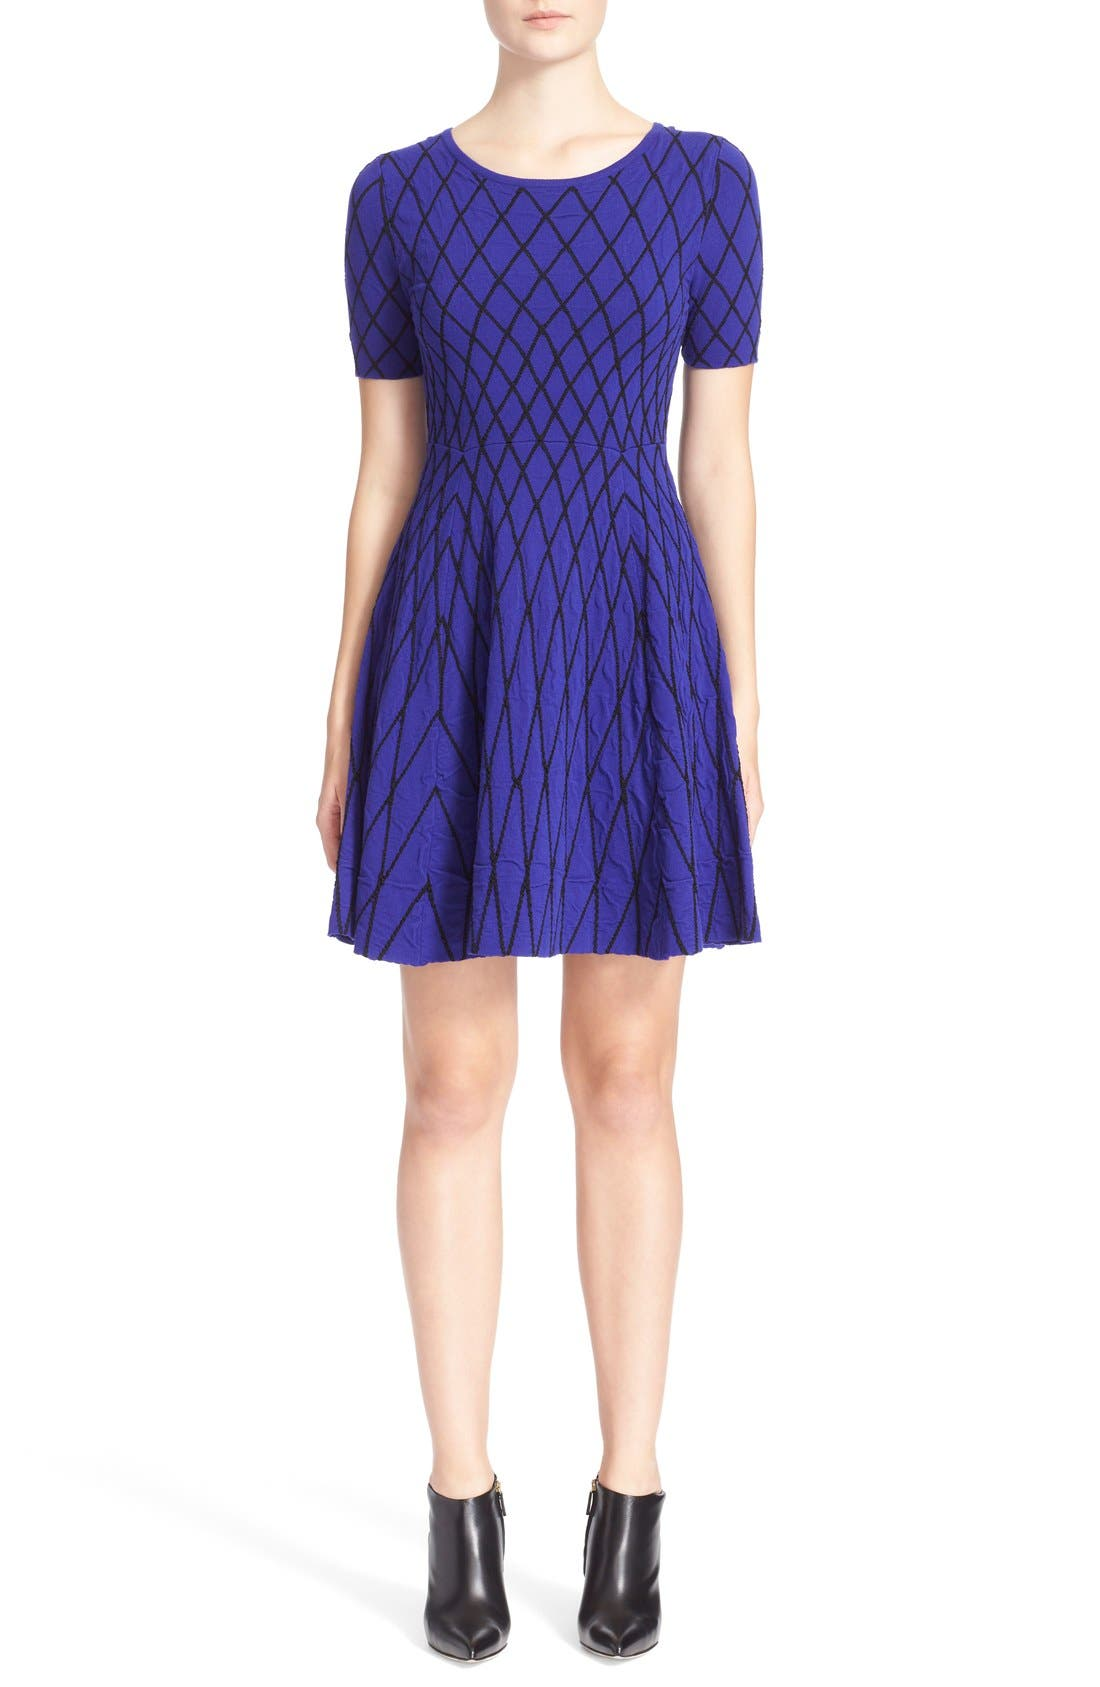 Alternate Image 1 Selected - Milly Diamond Jacquard Fit & Flare Dress